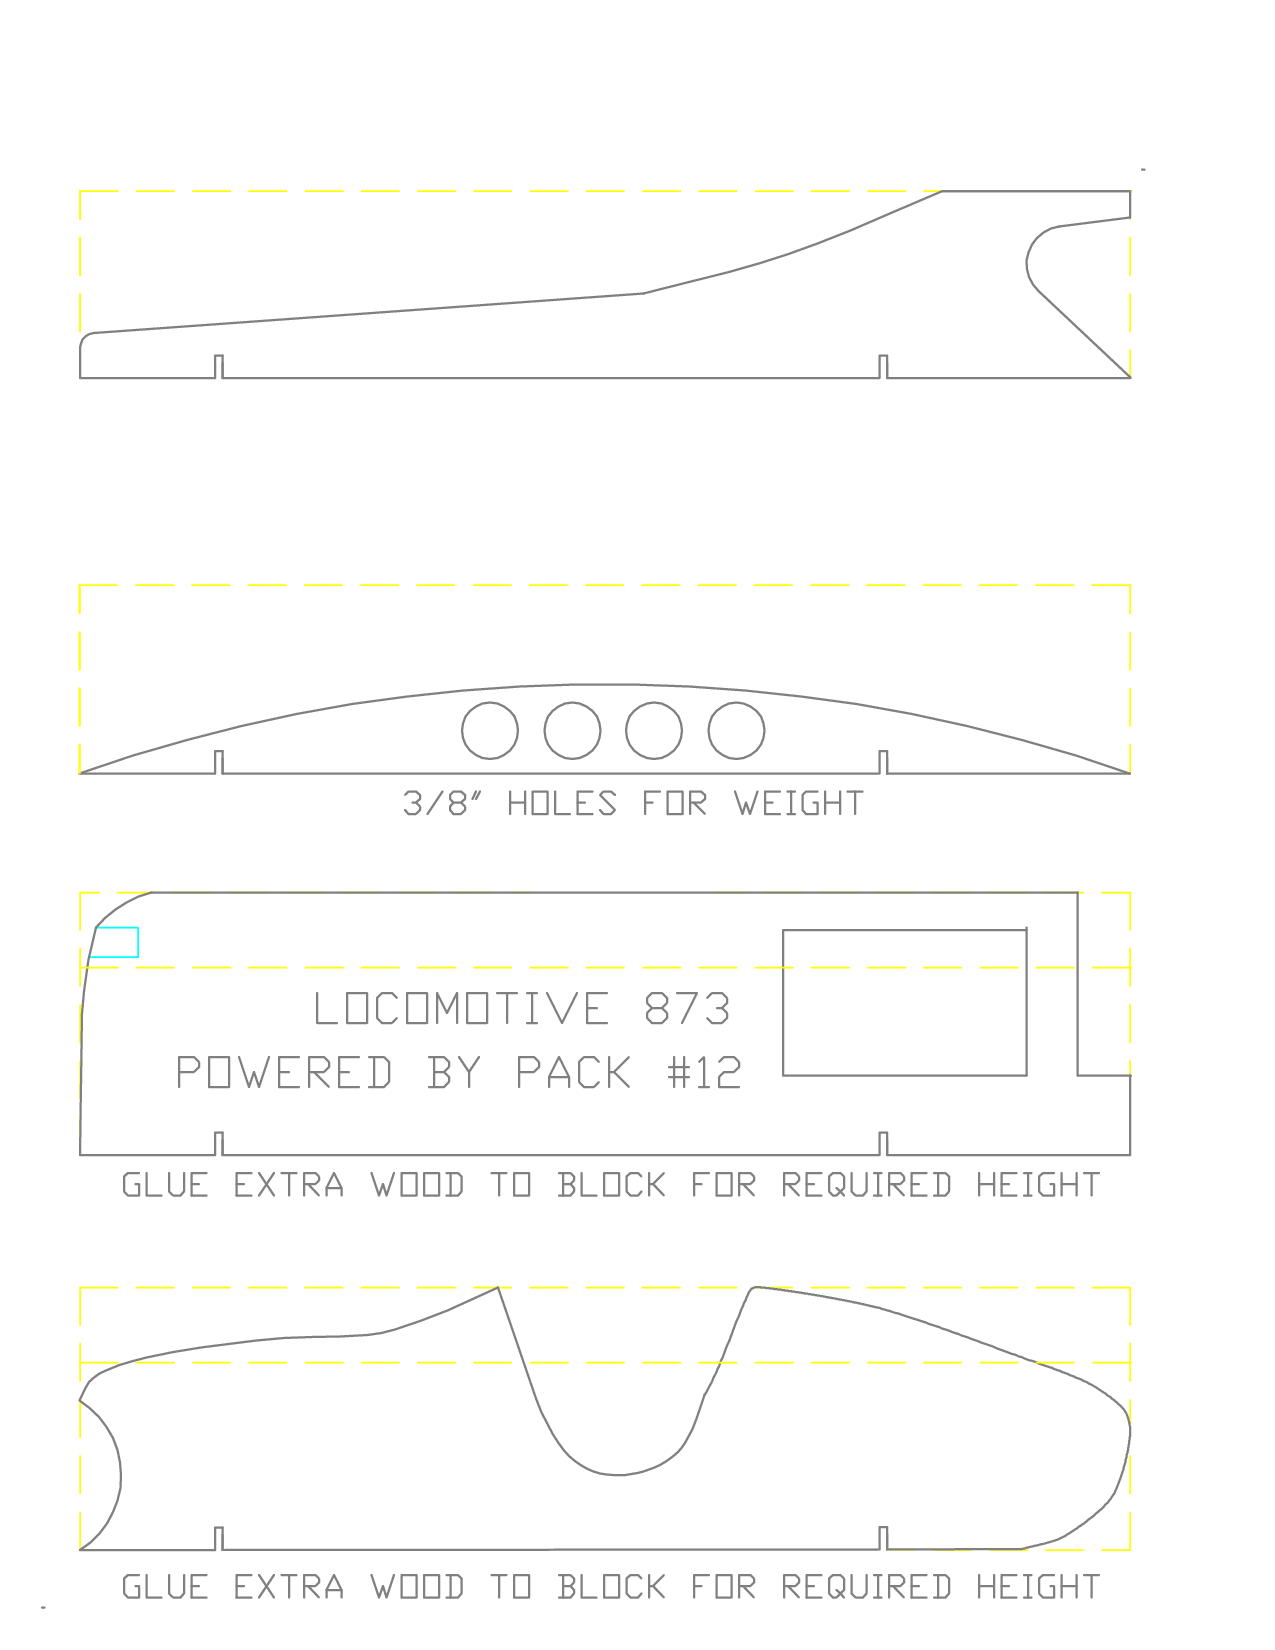 Pinewood derby templates printable pinewood derby car for Boy scouts pinewood derby templates